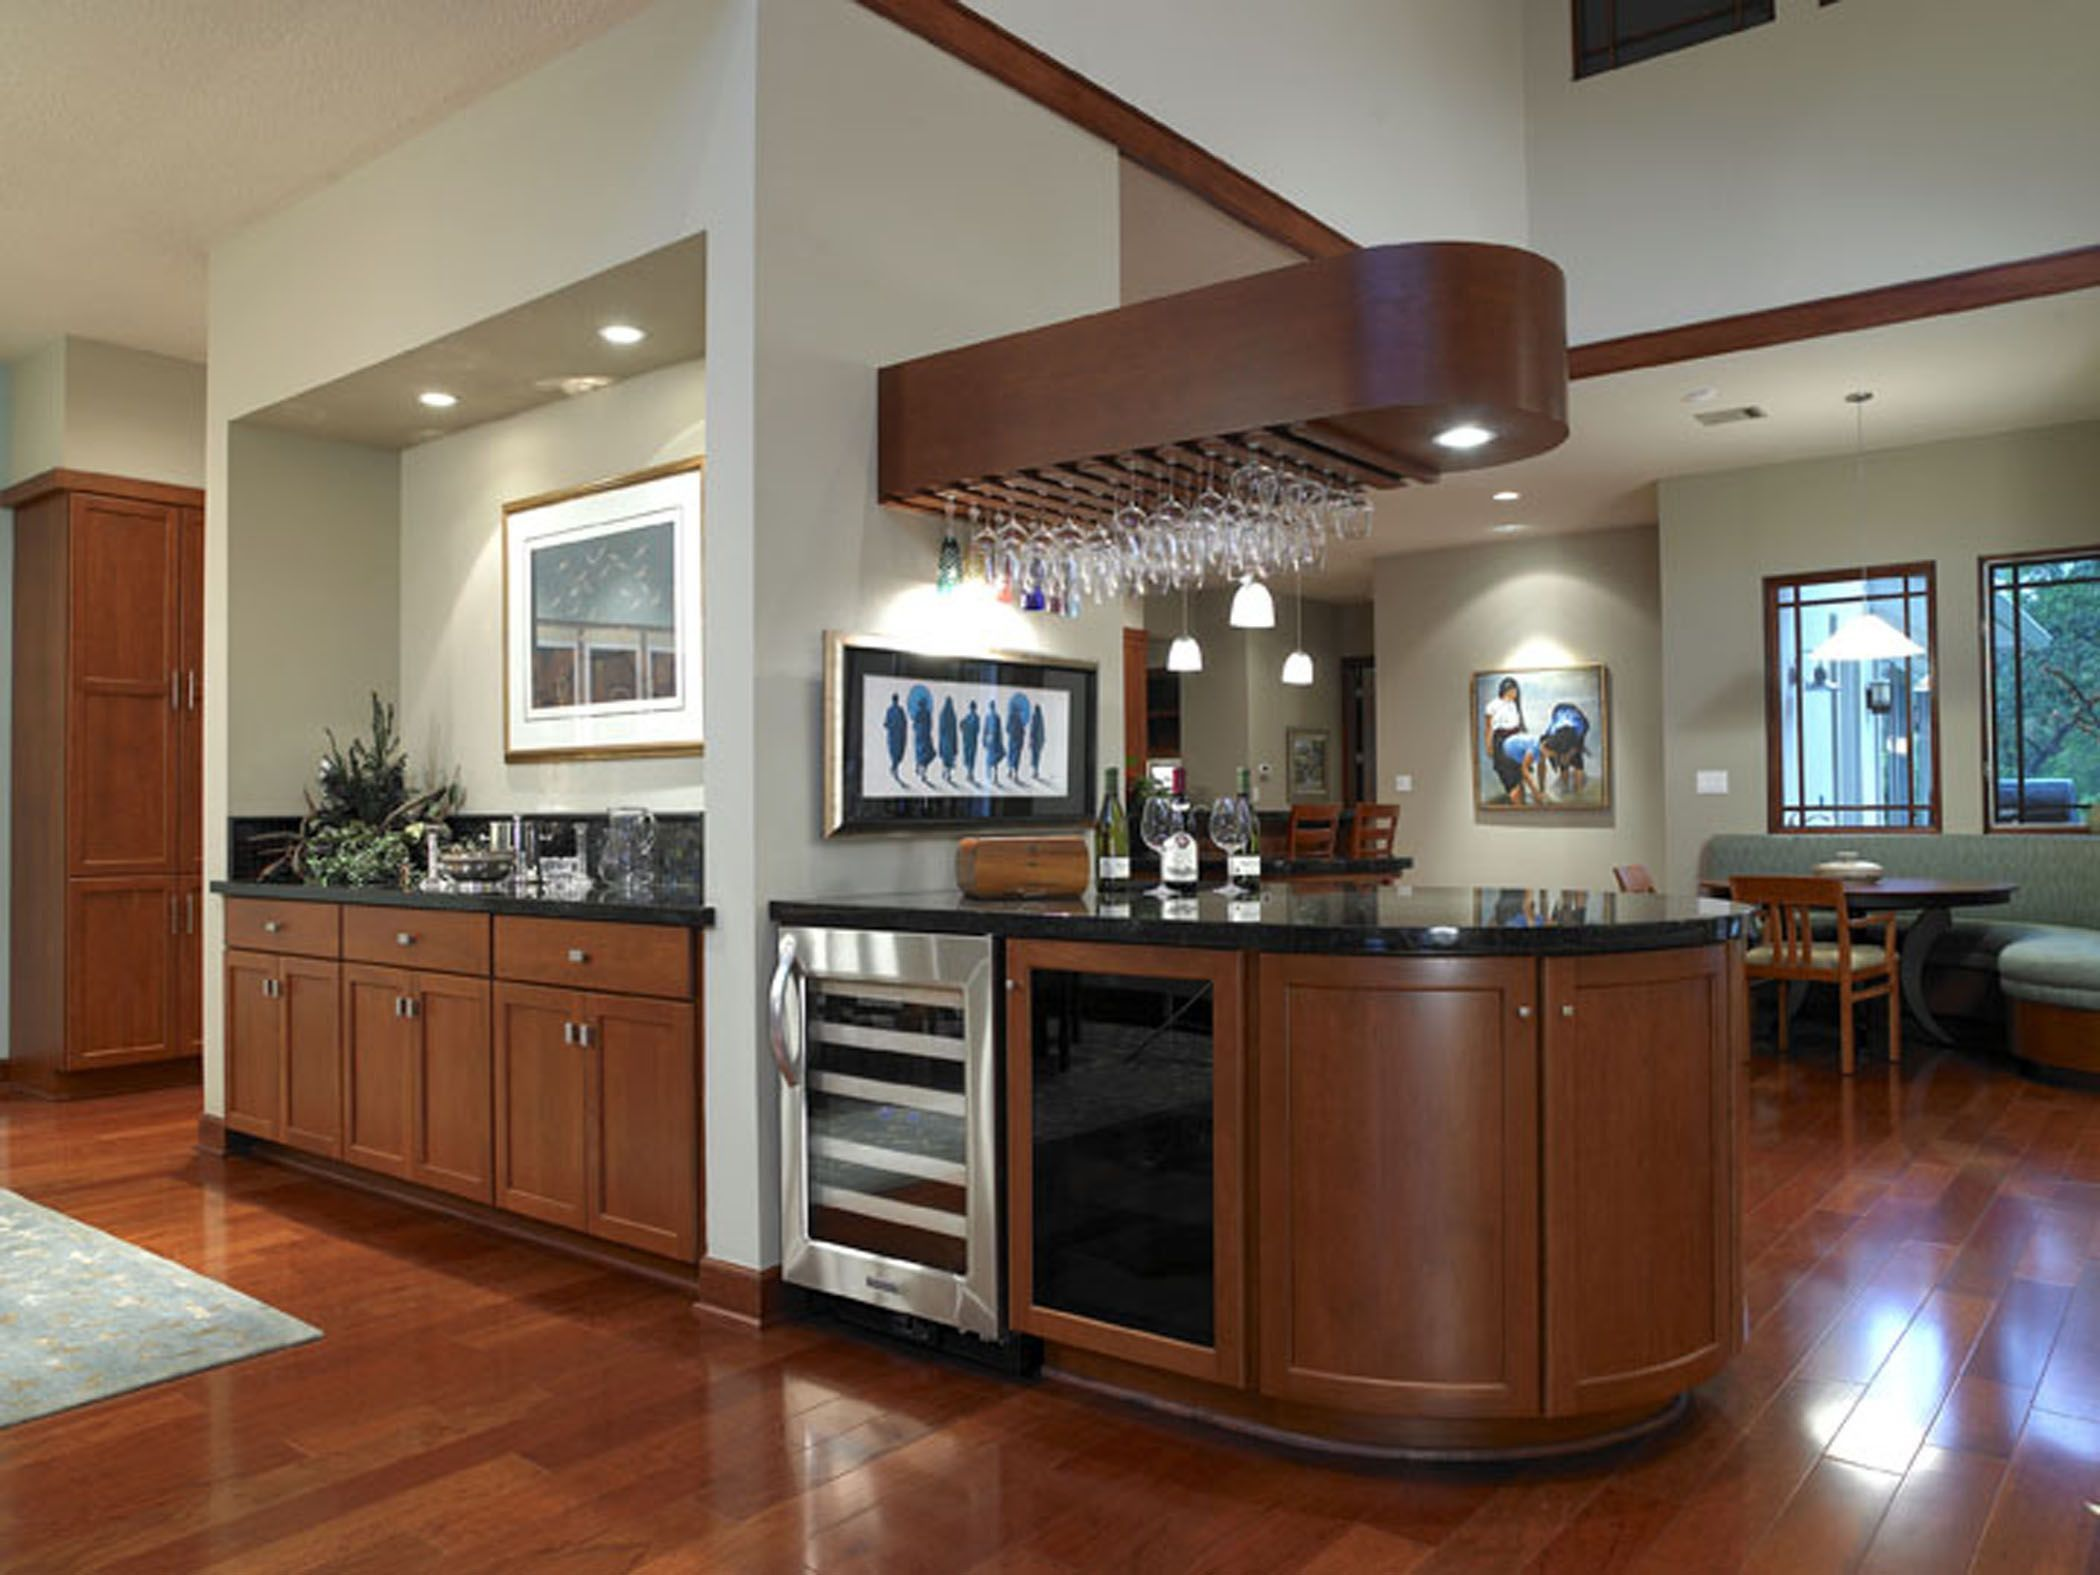 Fresh Kitchen Cabinets Colorado Springs   Kitchen cabinets ...